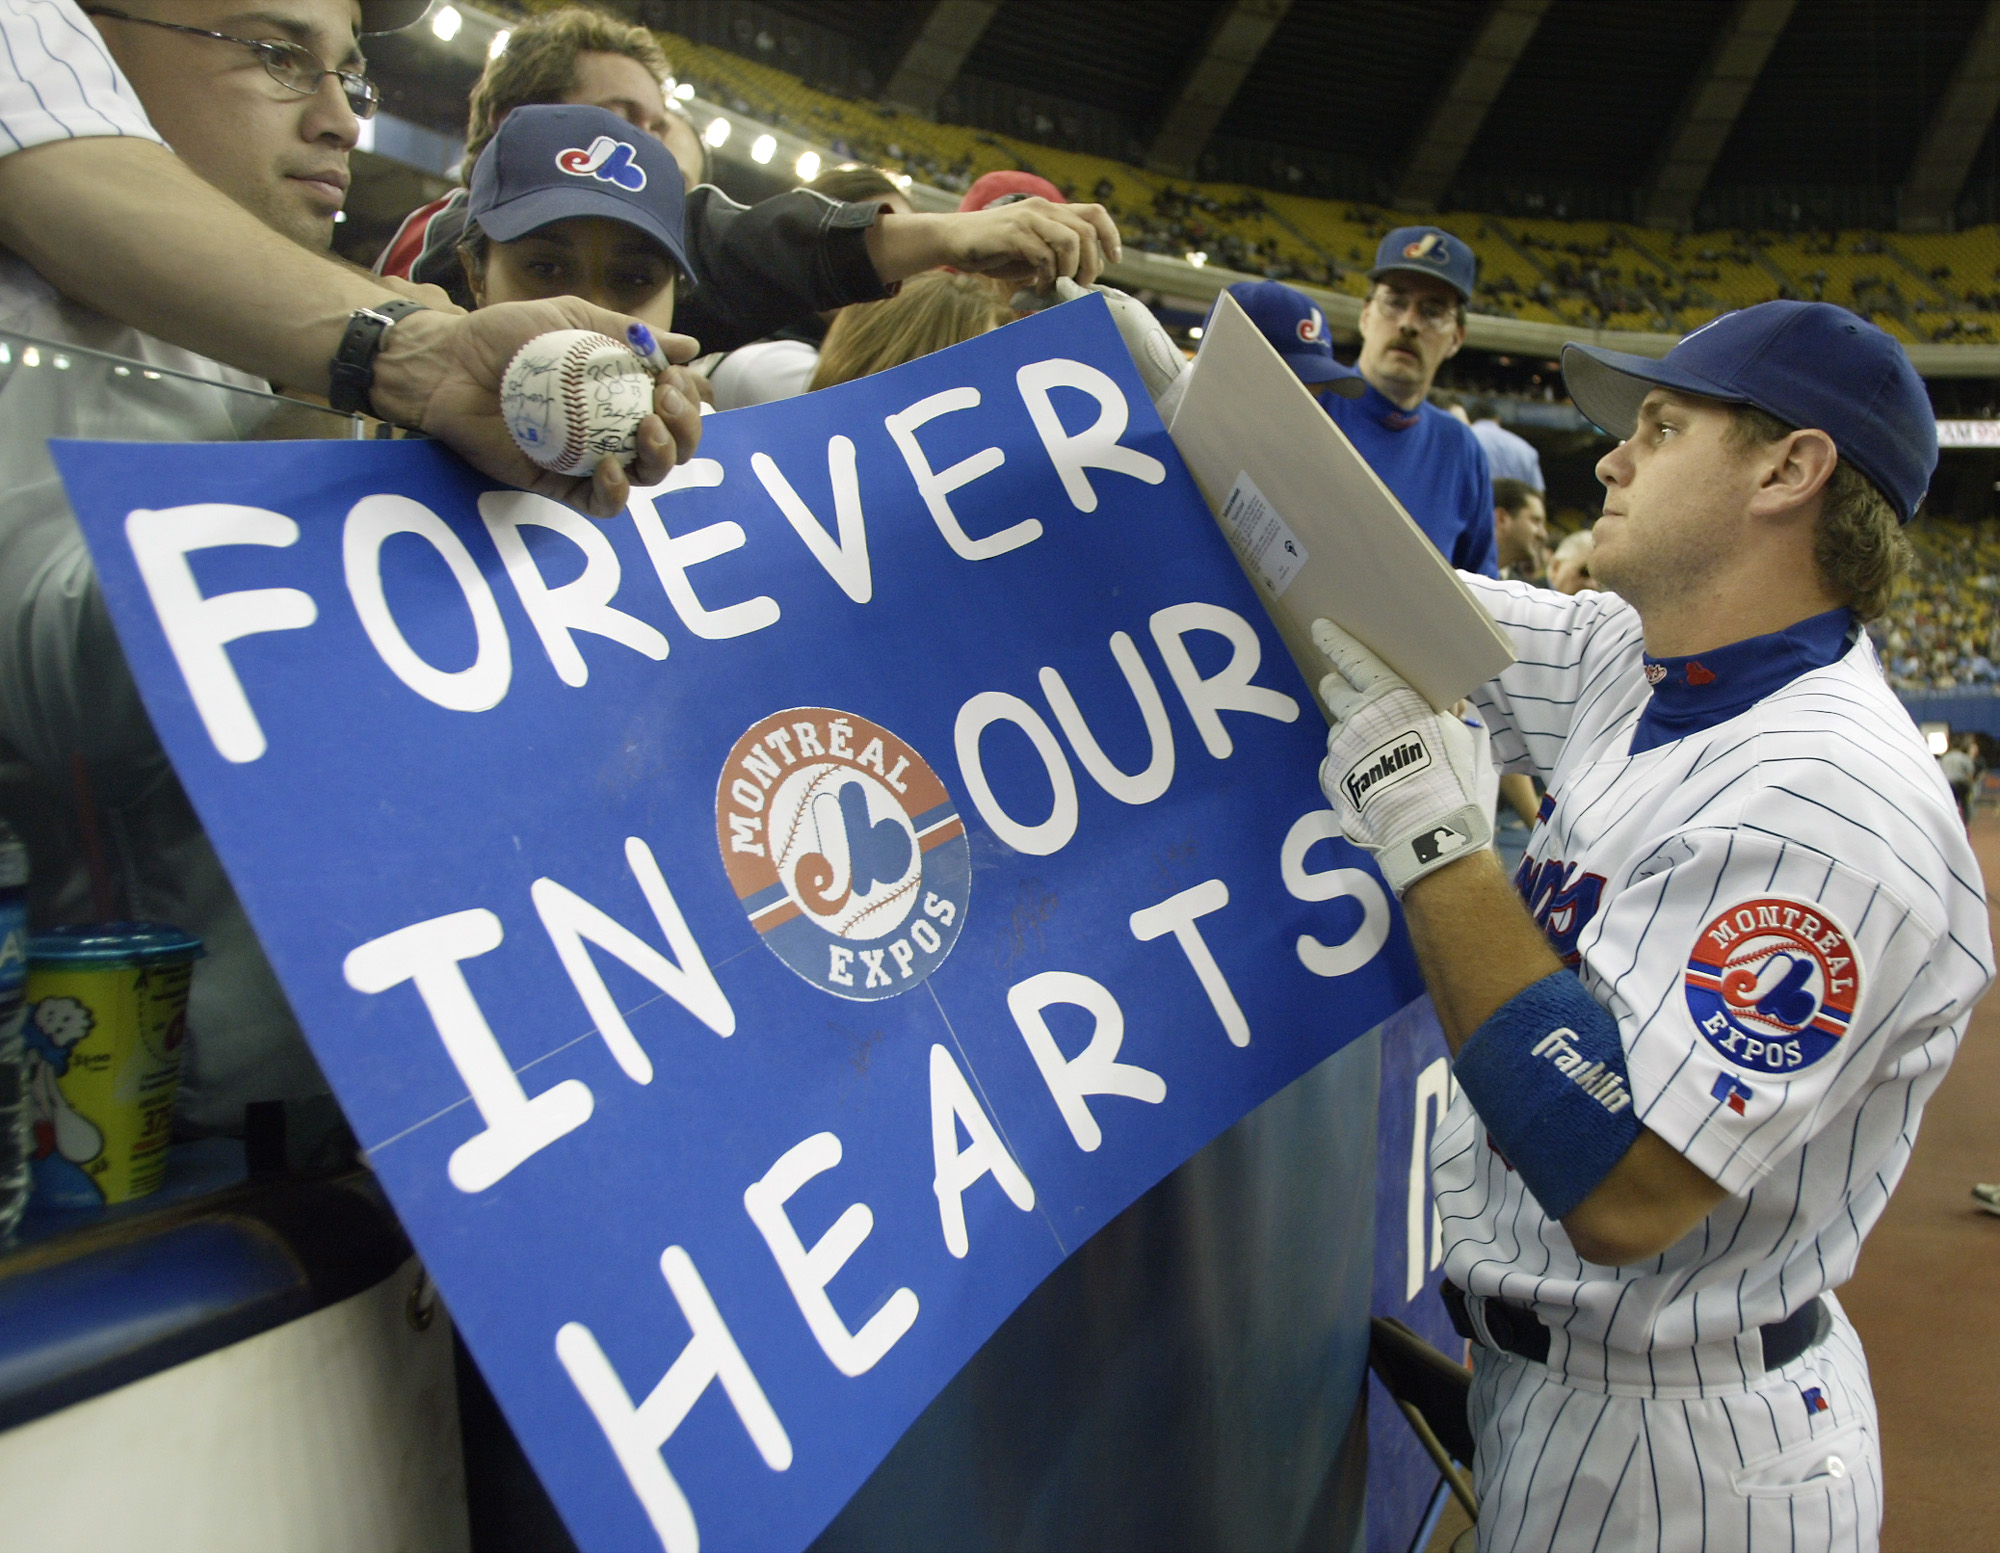 FILE - In this Sept. 29, 2004, file photo, Montreal Expos first baseman Brad Wilkerson signs autographs before the team's final home game against the Florida Marlins in Montreal. The team moved to Washington, D.C., the following season after 35 years in M